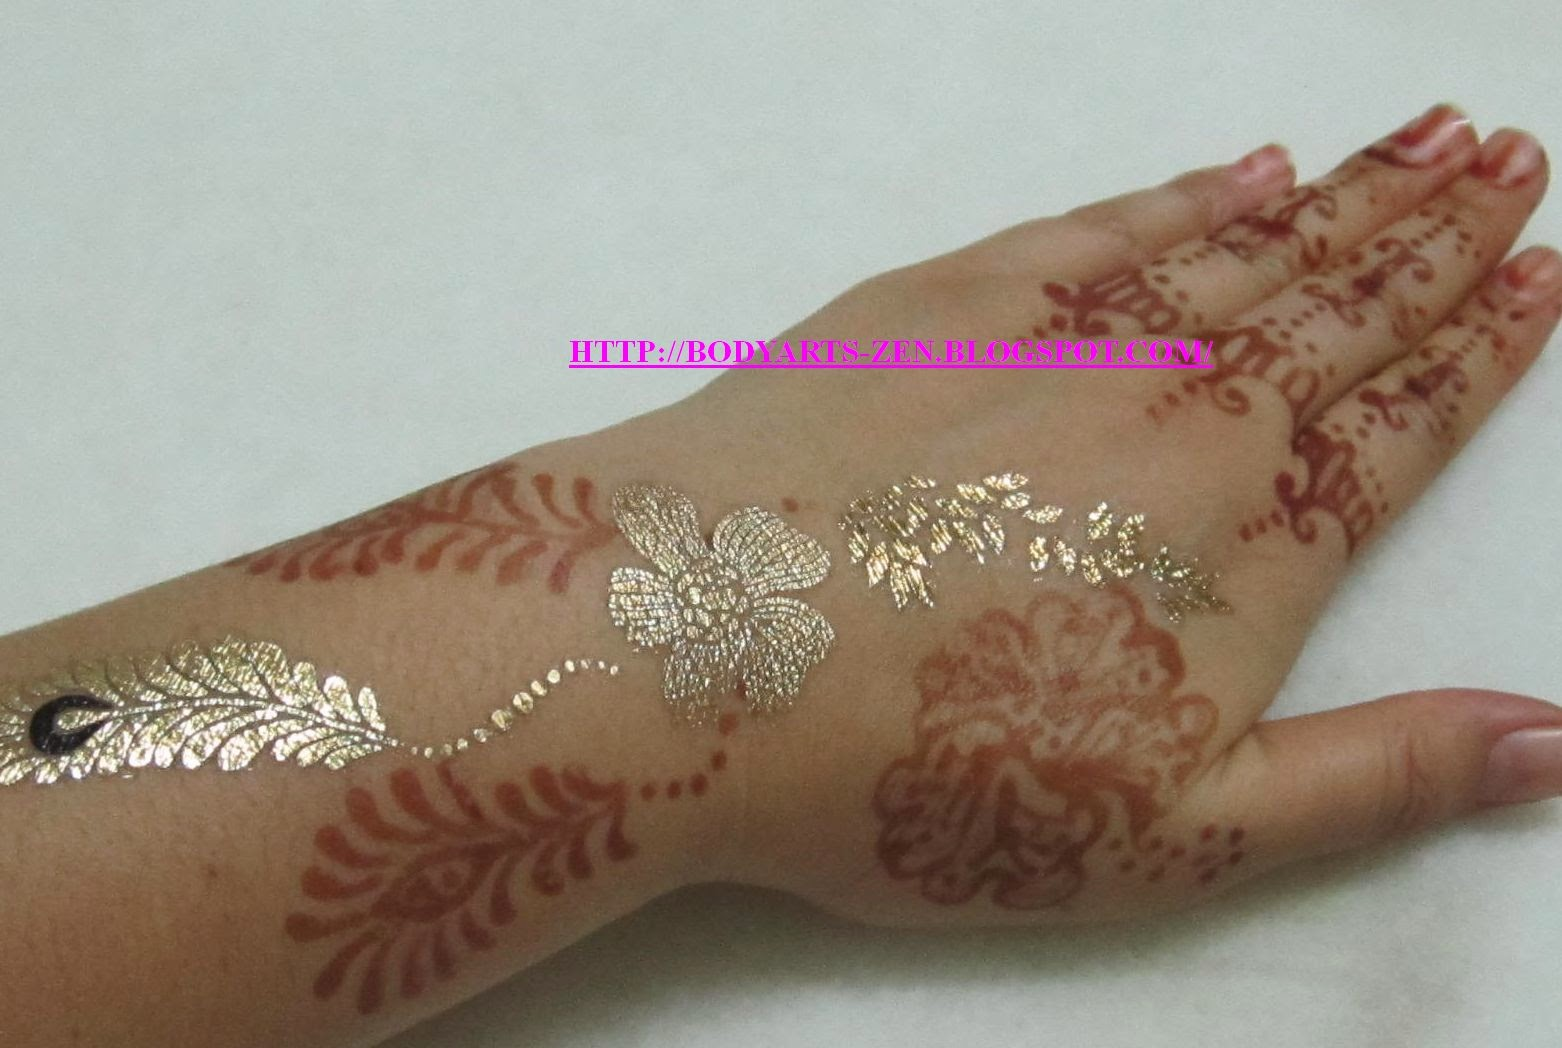 FACE PAINTING KL BODY ART HENNA TATTOO HENNNA TATTOO